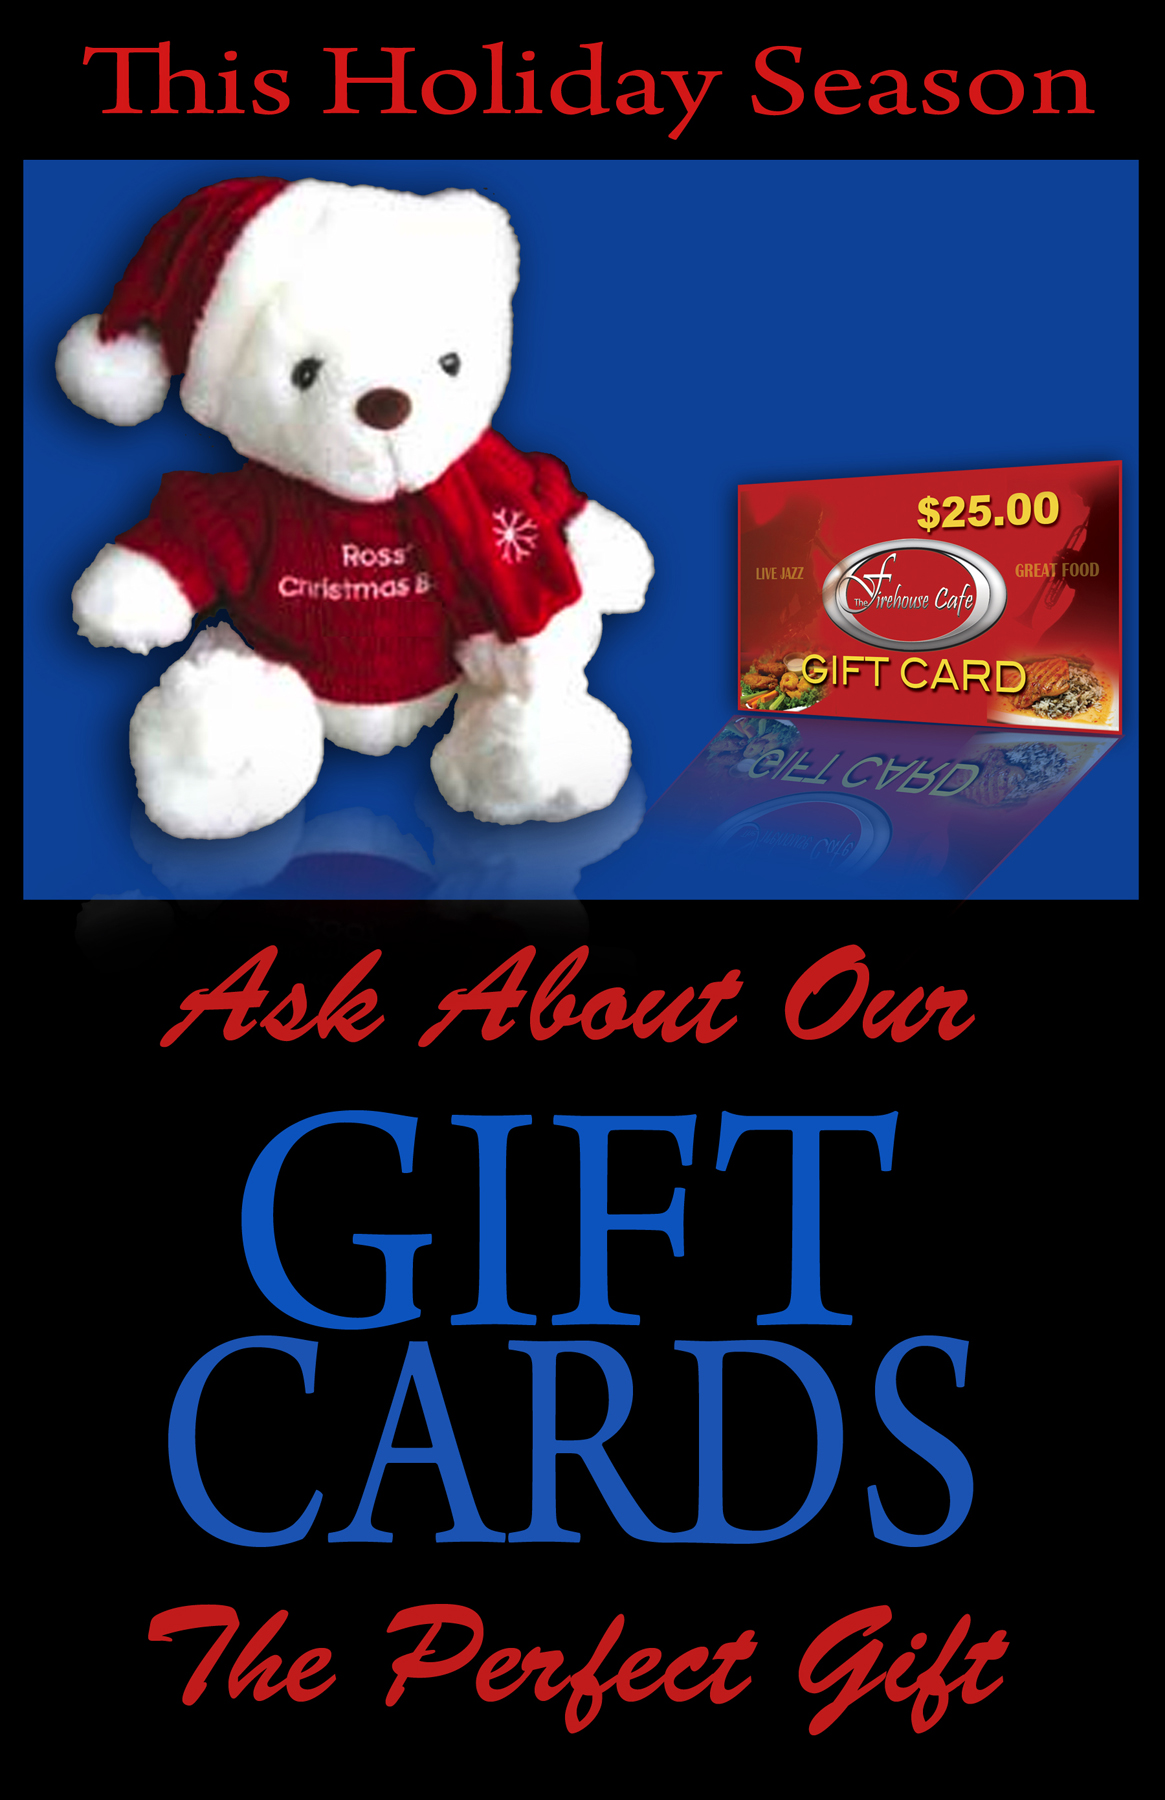 giftcard promoblue